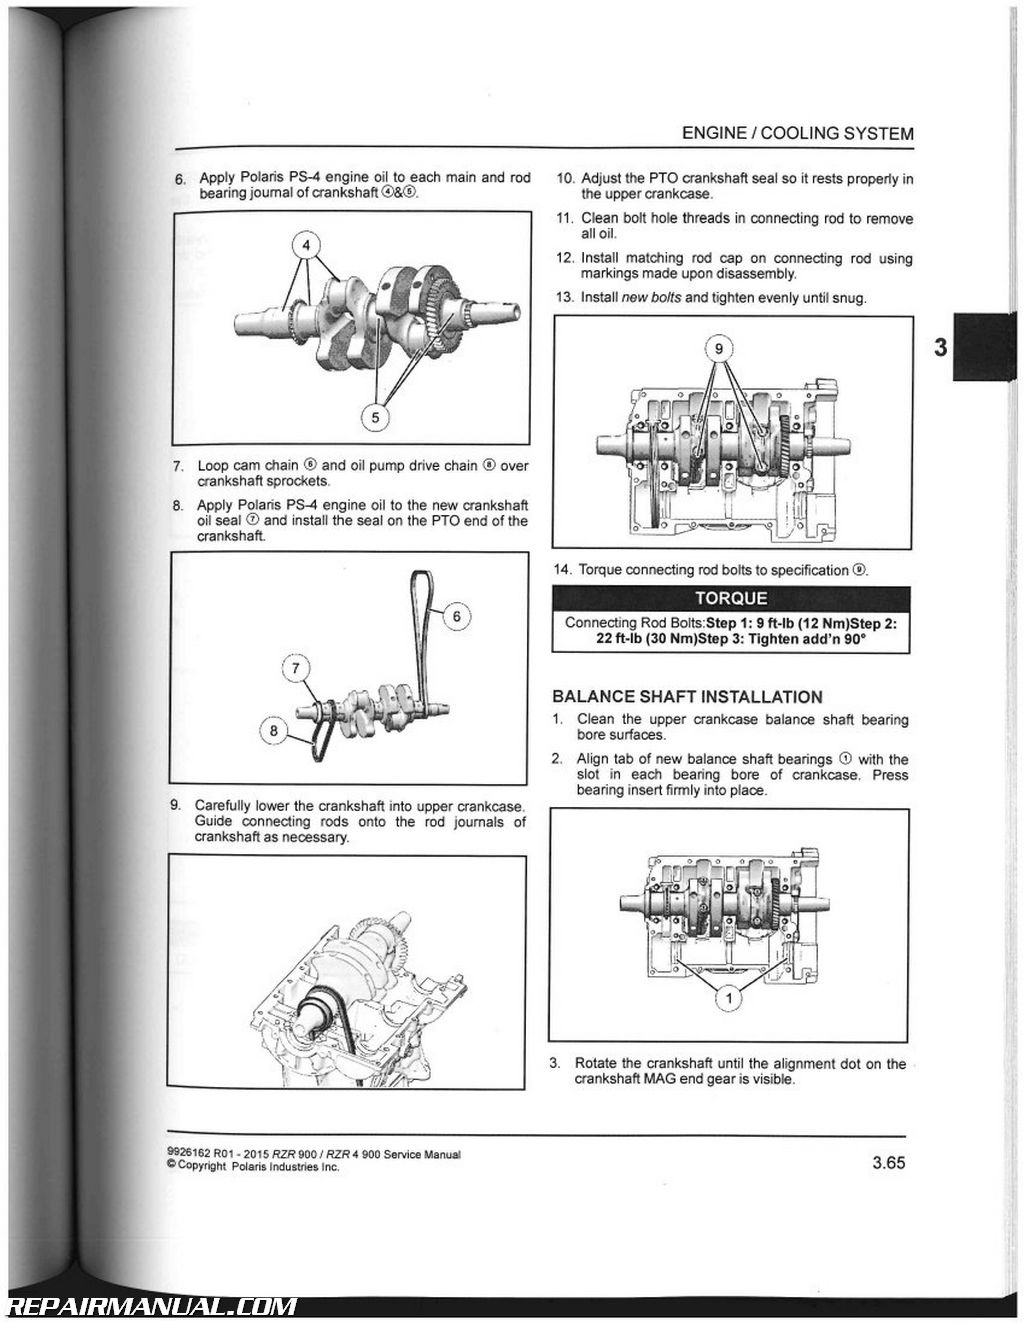 dual battery installation polaris rzr forum rzr forums 2004 Polaris Sportsman 500 Ho Wiring-Diagram Polaris Brake Light Wiring polaris wiring diagram 2014 rzr 900